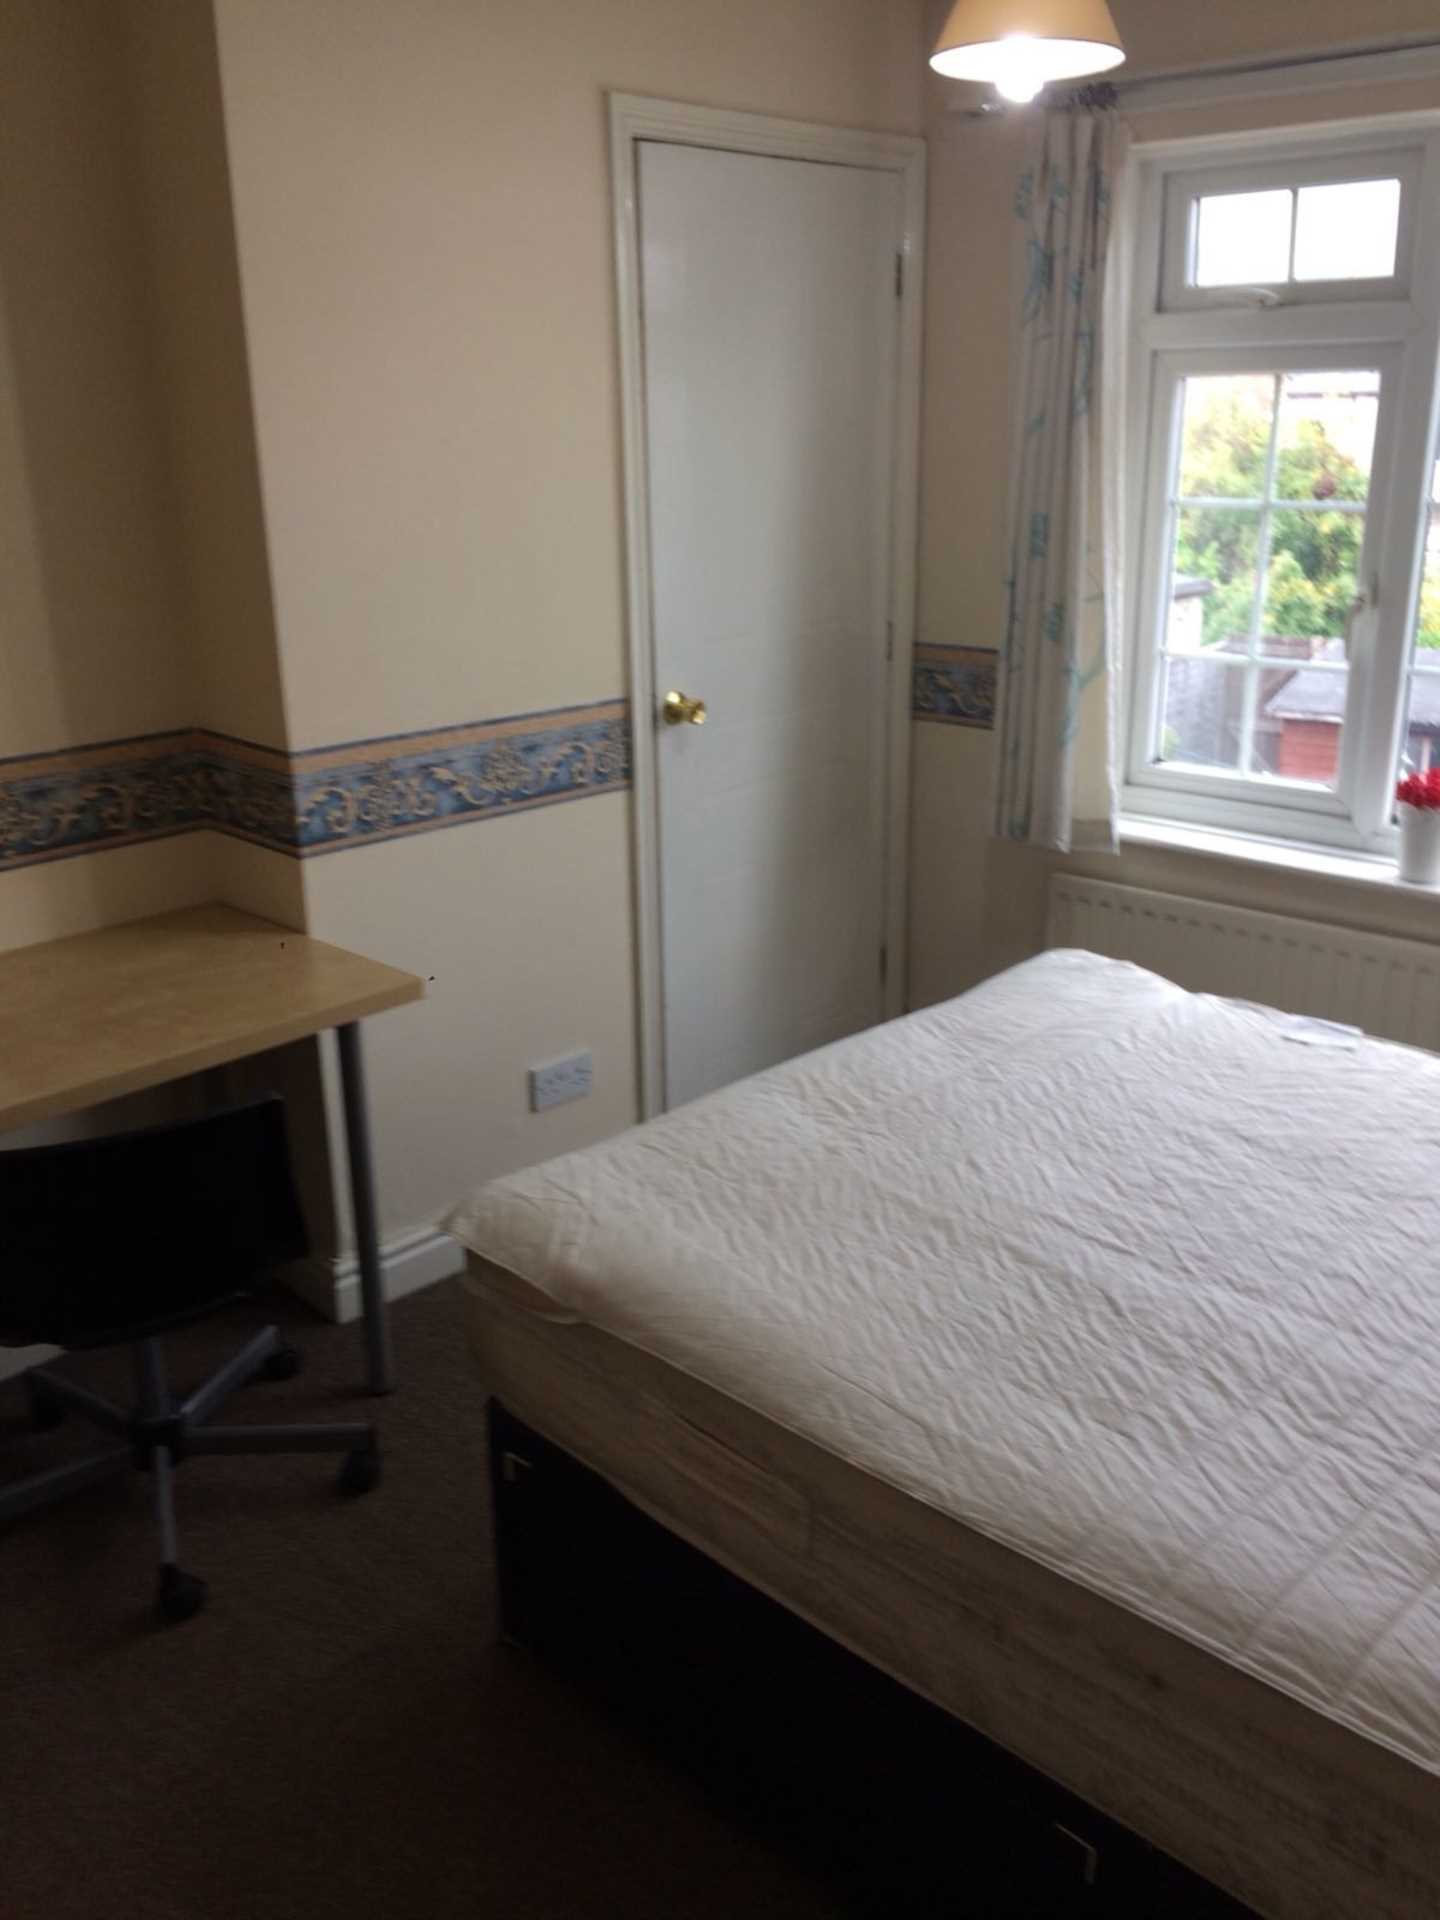 Room 1, Queensland Avenue - 5 bedroom 2 bathroom student home fully furnished, WIFI & bills included - NO FEES, Image 8